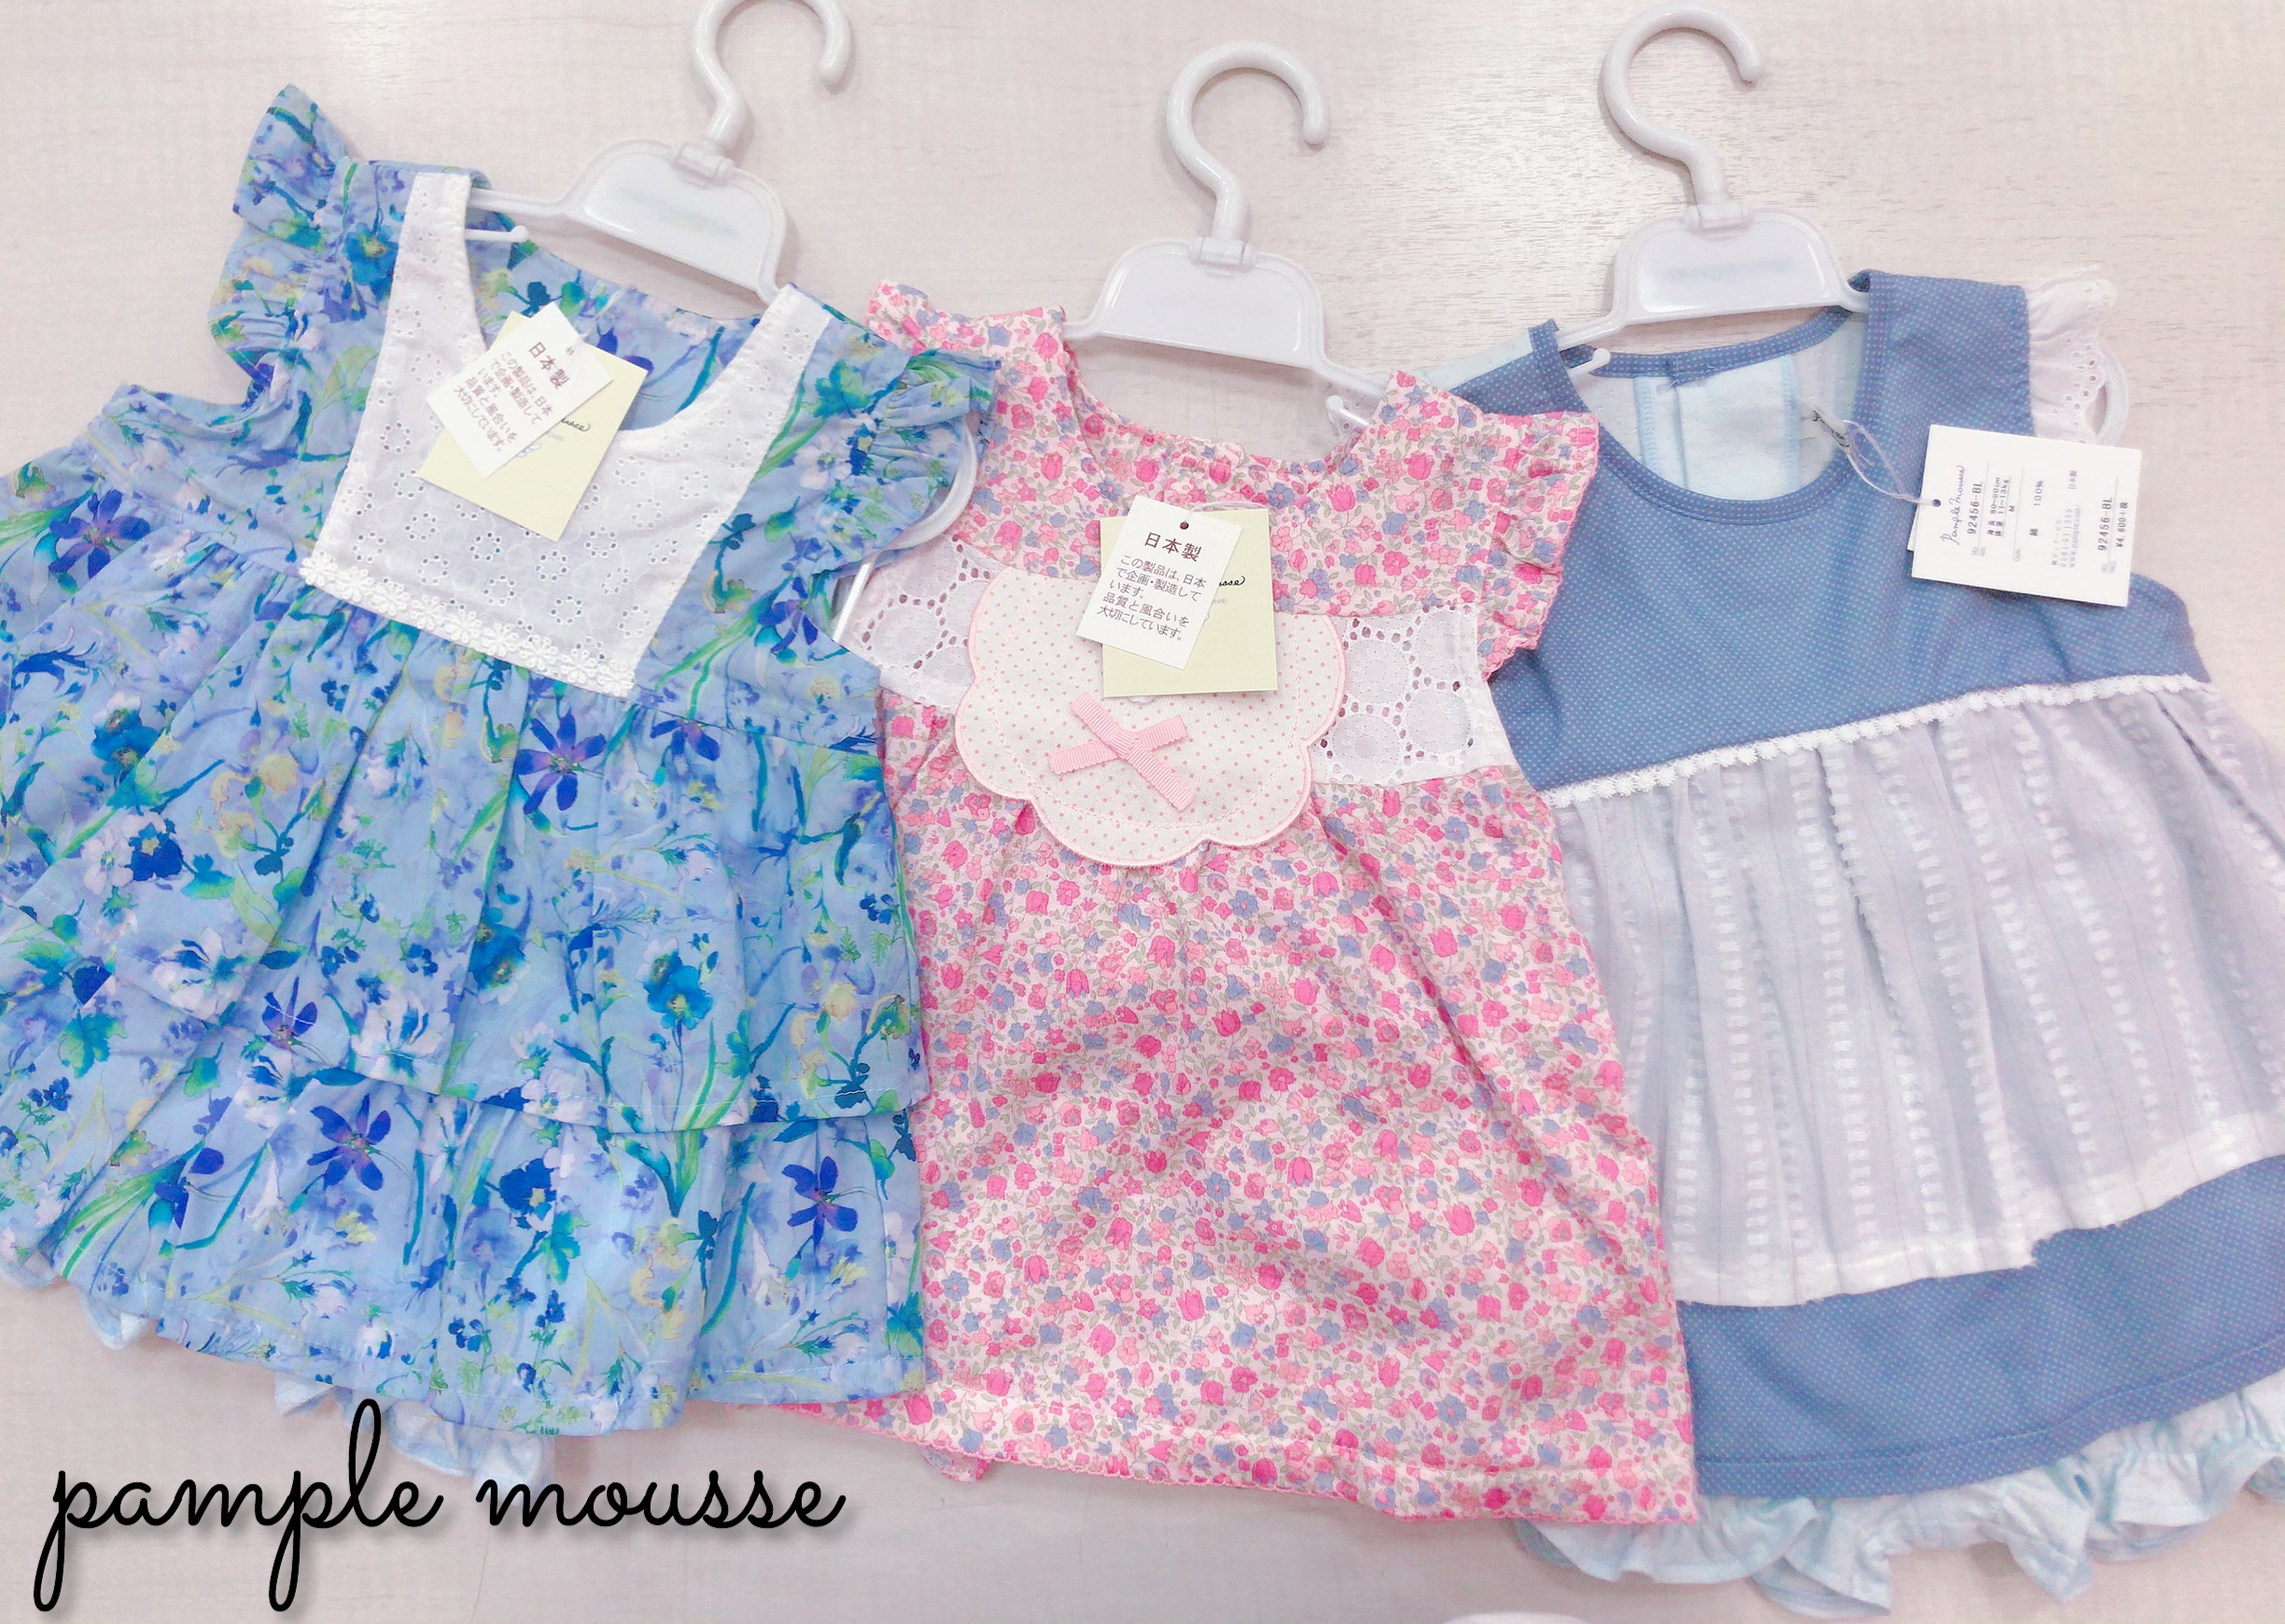 pample mousse特別入荷!!